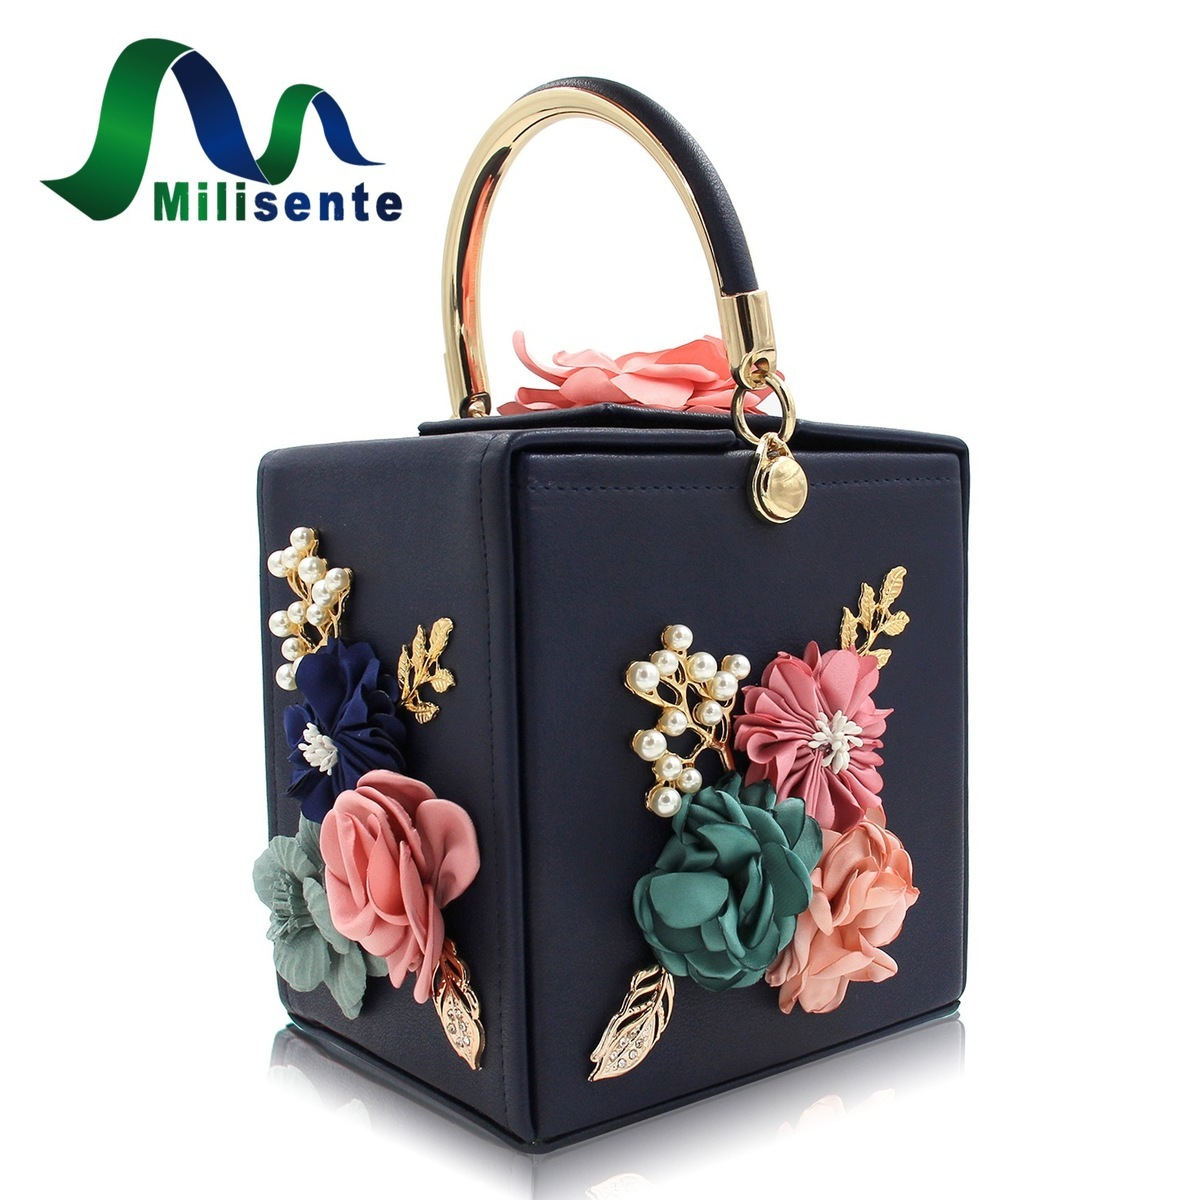 Milisente Brand Women Flower Wedding Party Clutch Purse Ladies Evening Bag  Royal Blue Day Clutches With Pearl Chain - www.elgoncart.com 0763a5a79deb